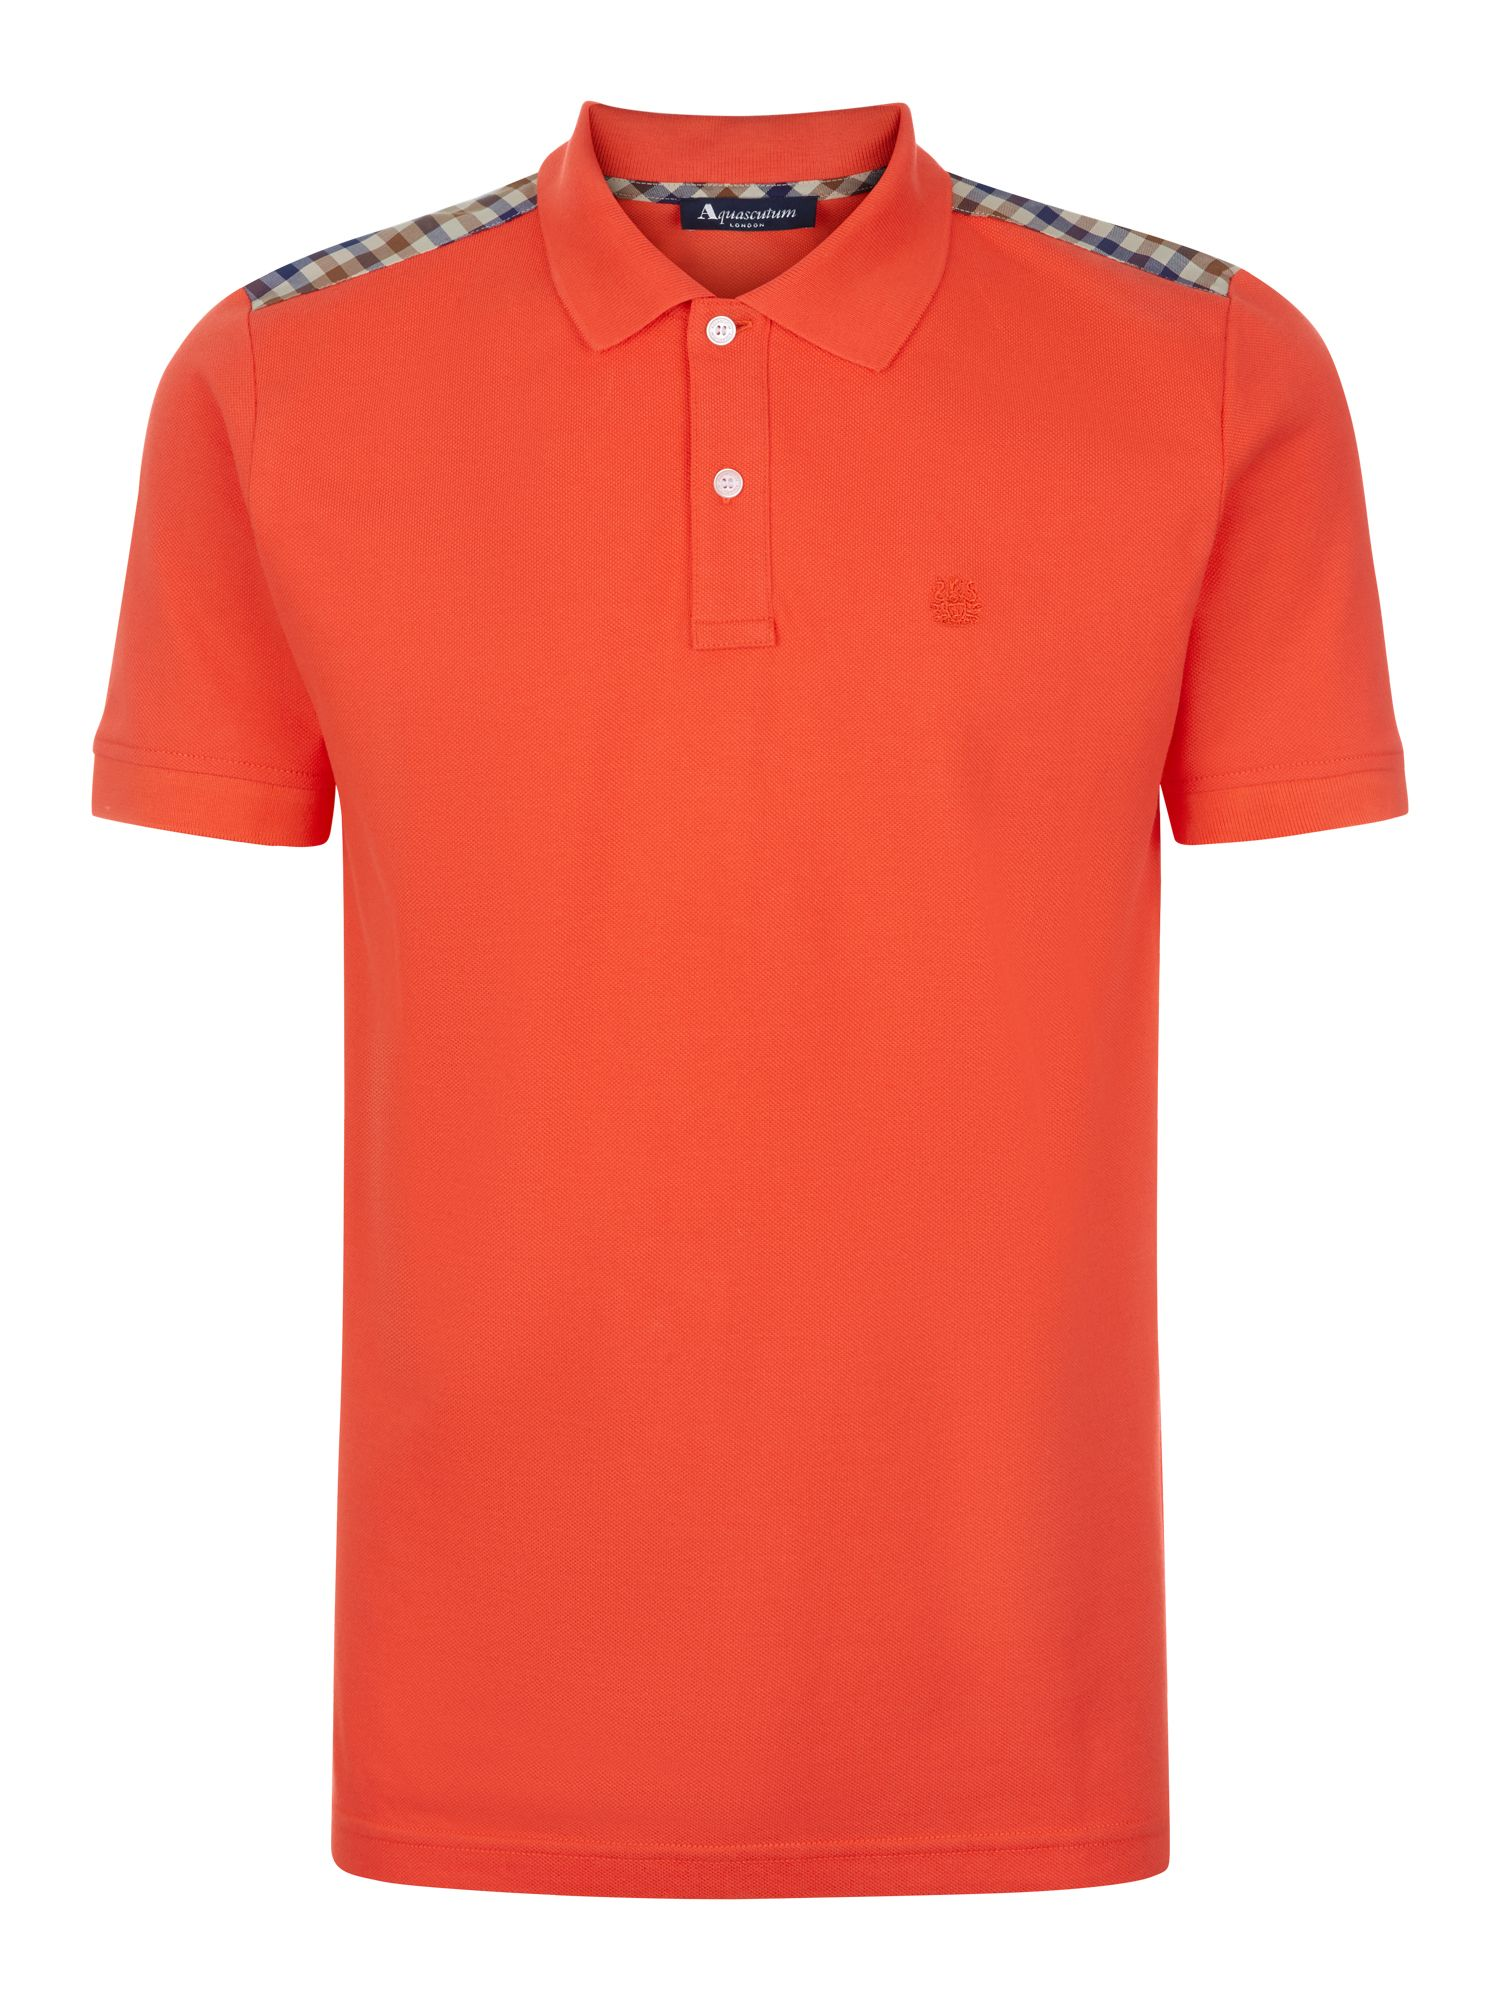 Men's Aquascutum Hill Club Check Polo Shirt, Coral